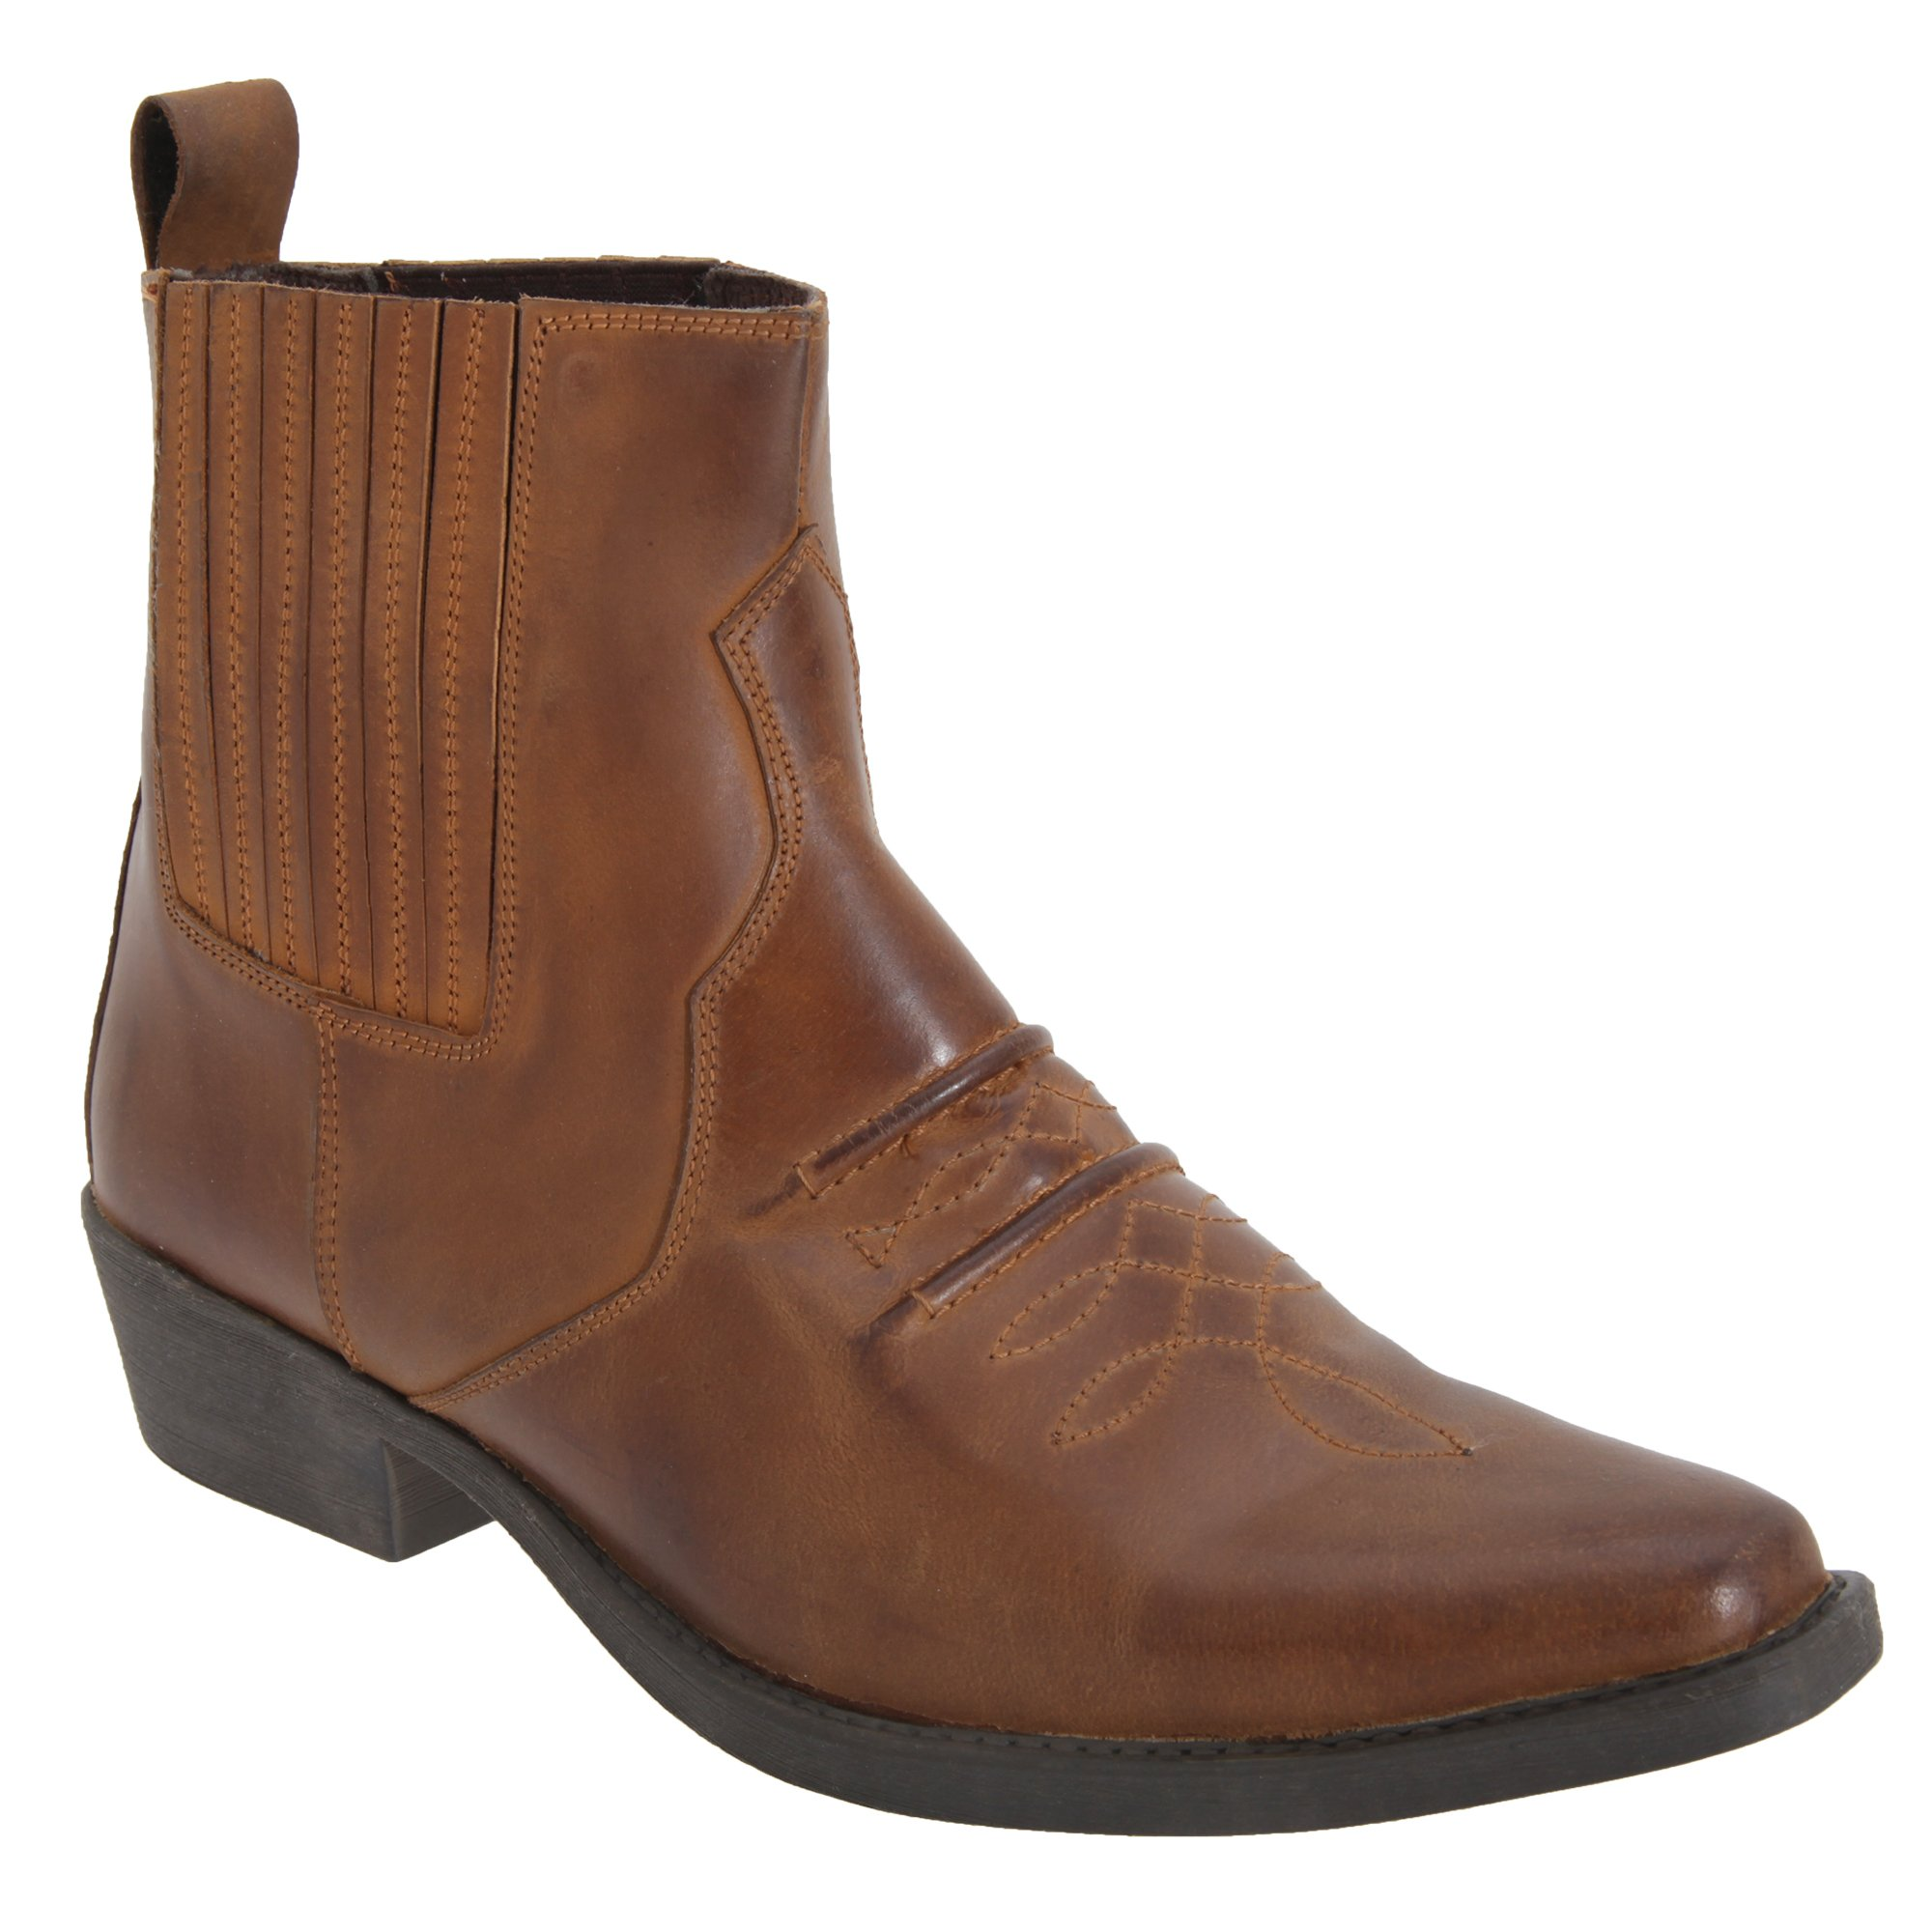 Gringos Mens Distressed Leather Gusset Western Ankle Boots (9 US) (Brown)